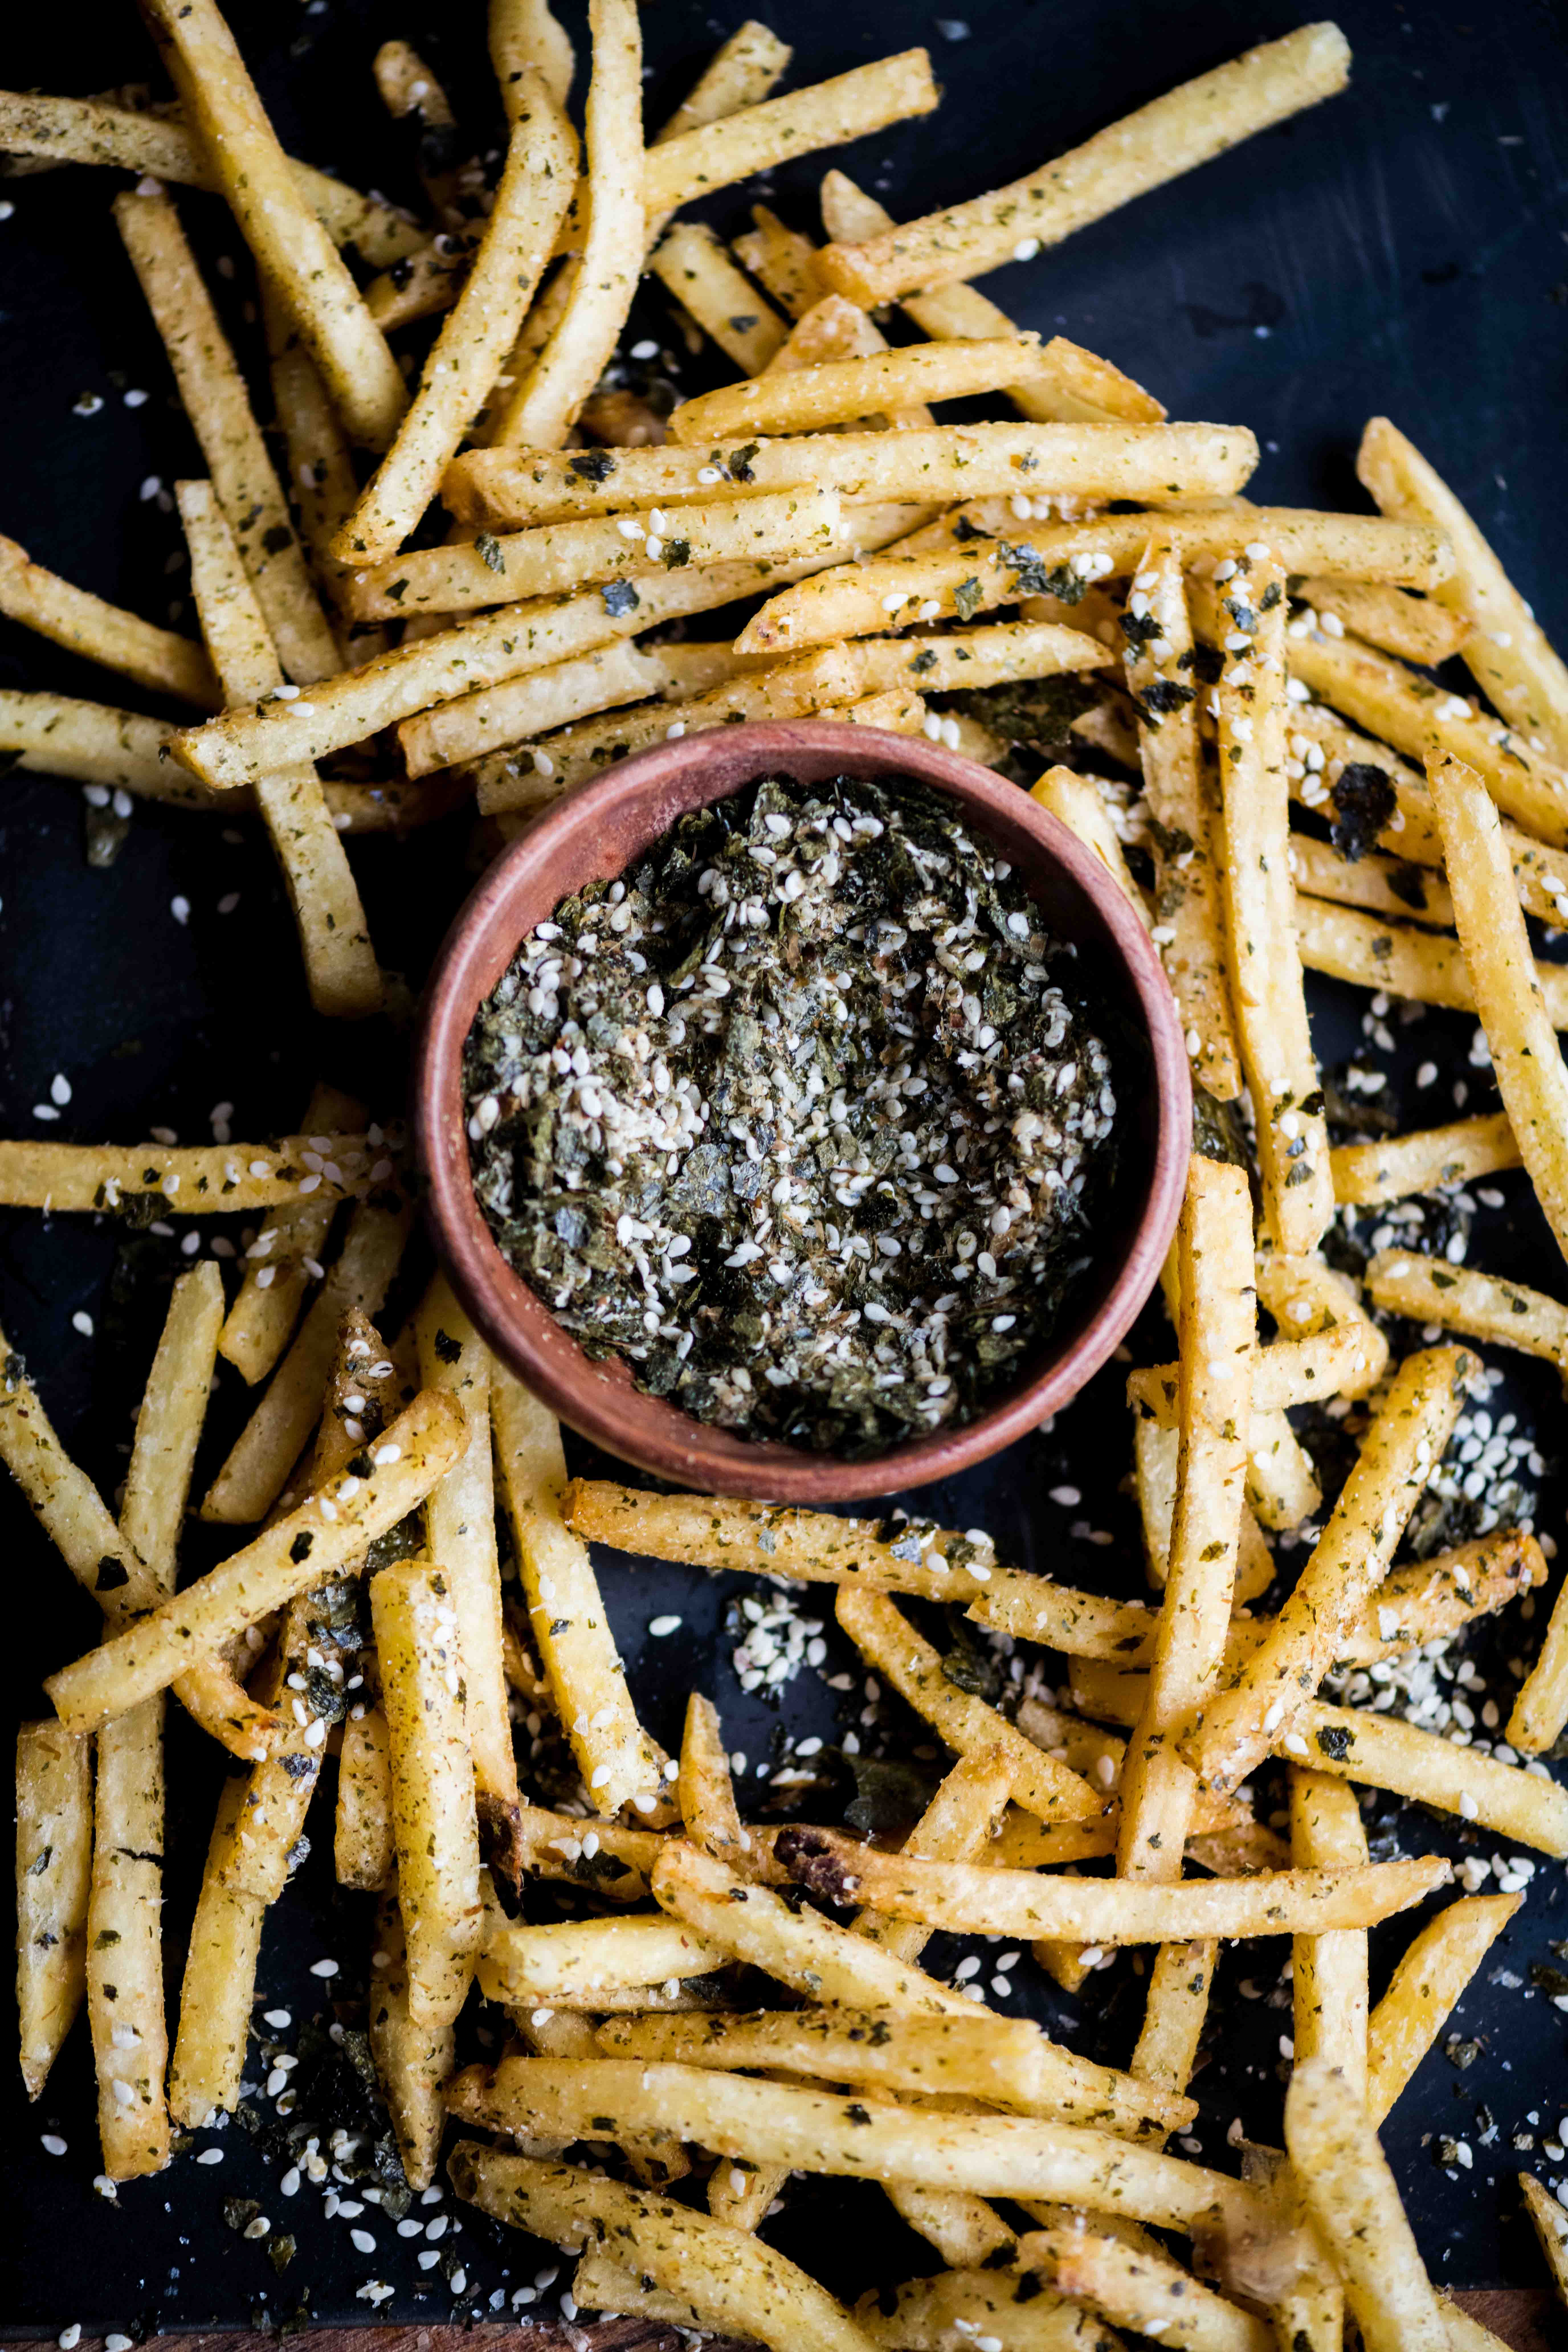 Fries with Homemade Furikake Seasoning and Wasabi Mayo